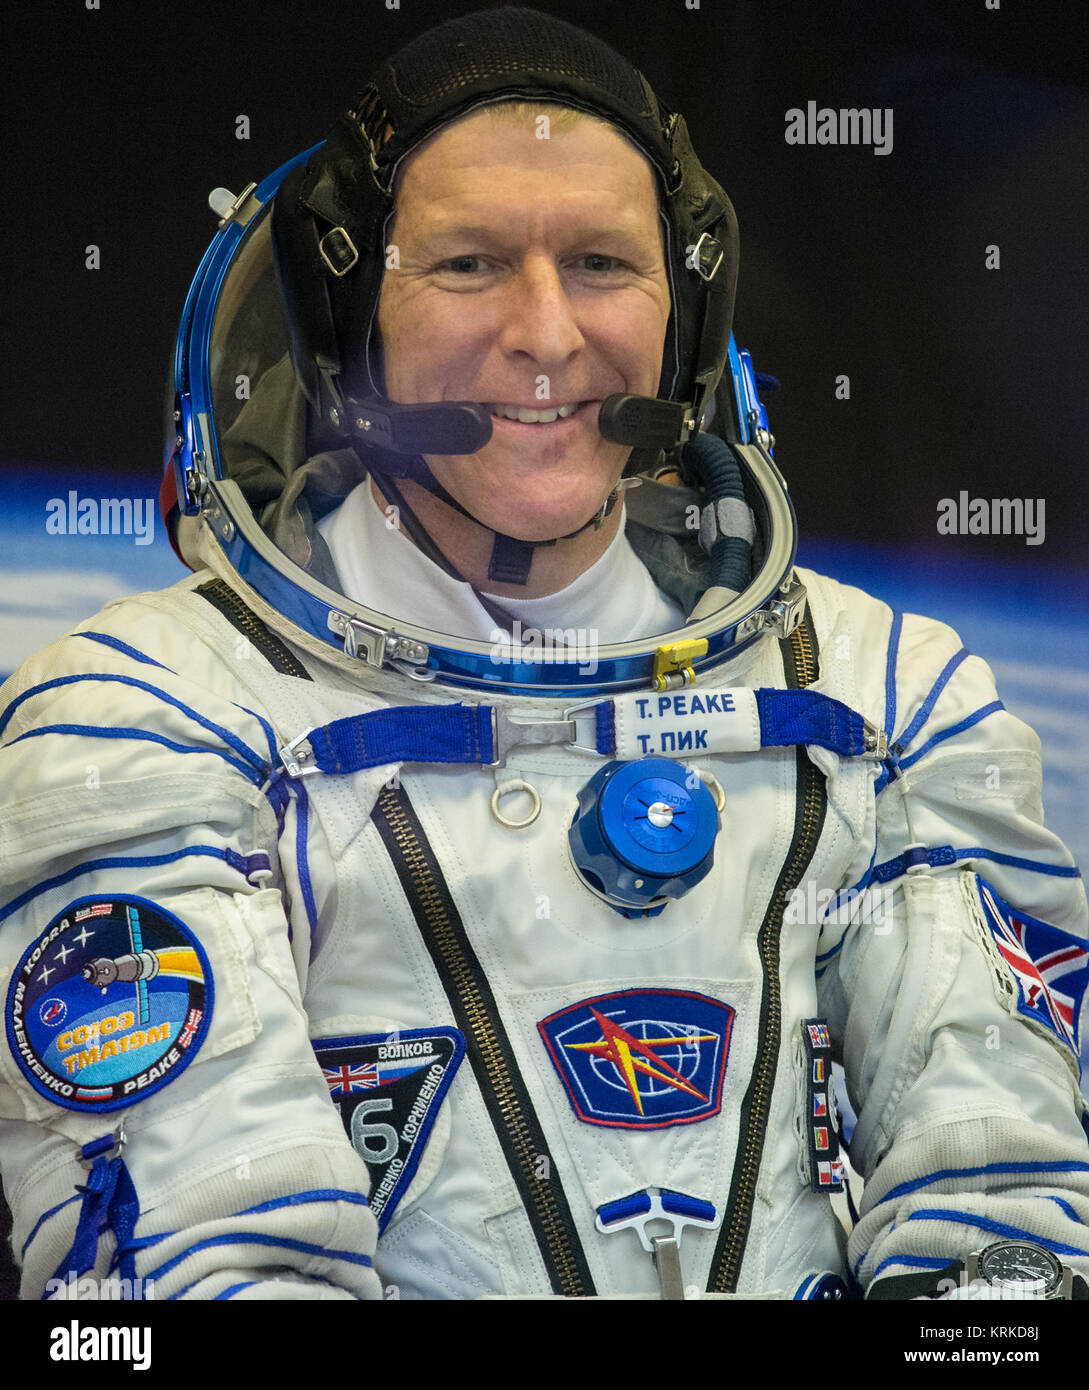 Expedition 46 Flight Engineer Tim Peake is seen before having his Russian Sokol Suit pressure checked in preparation - Stock Image